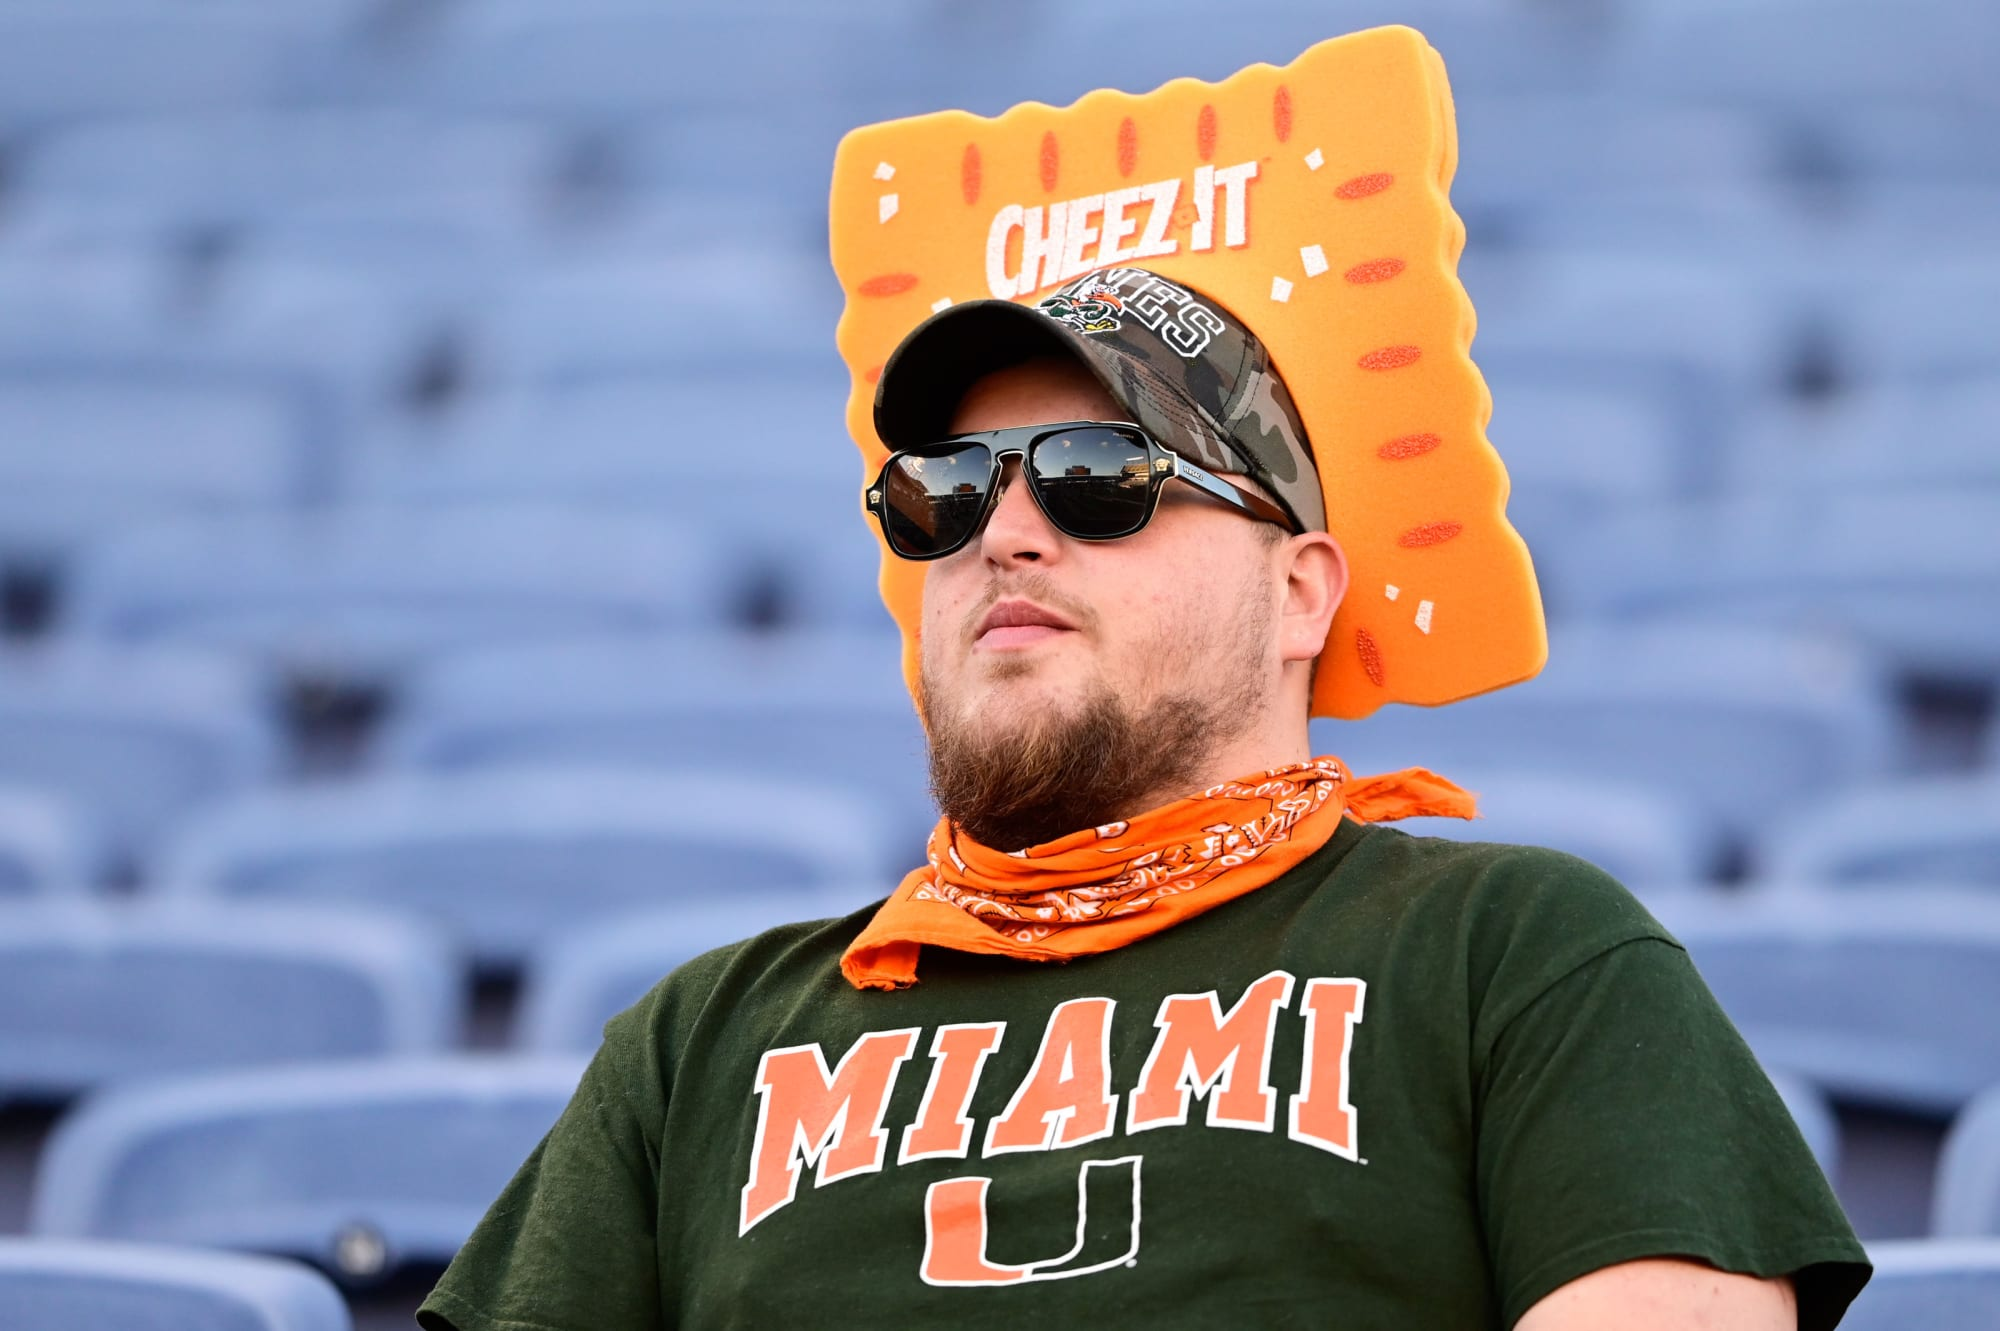 Alabama Crimson Tide: Canes are tired of hearing one question